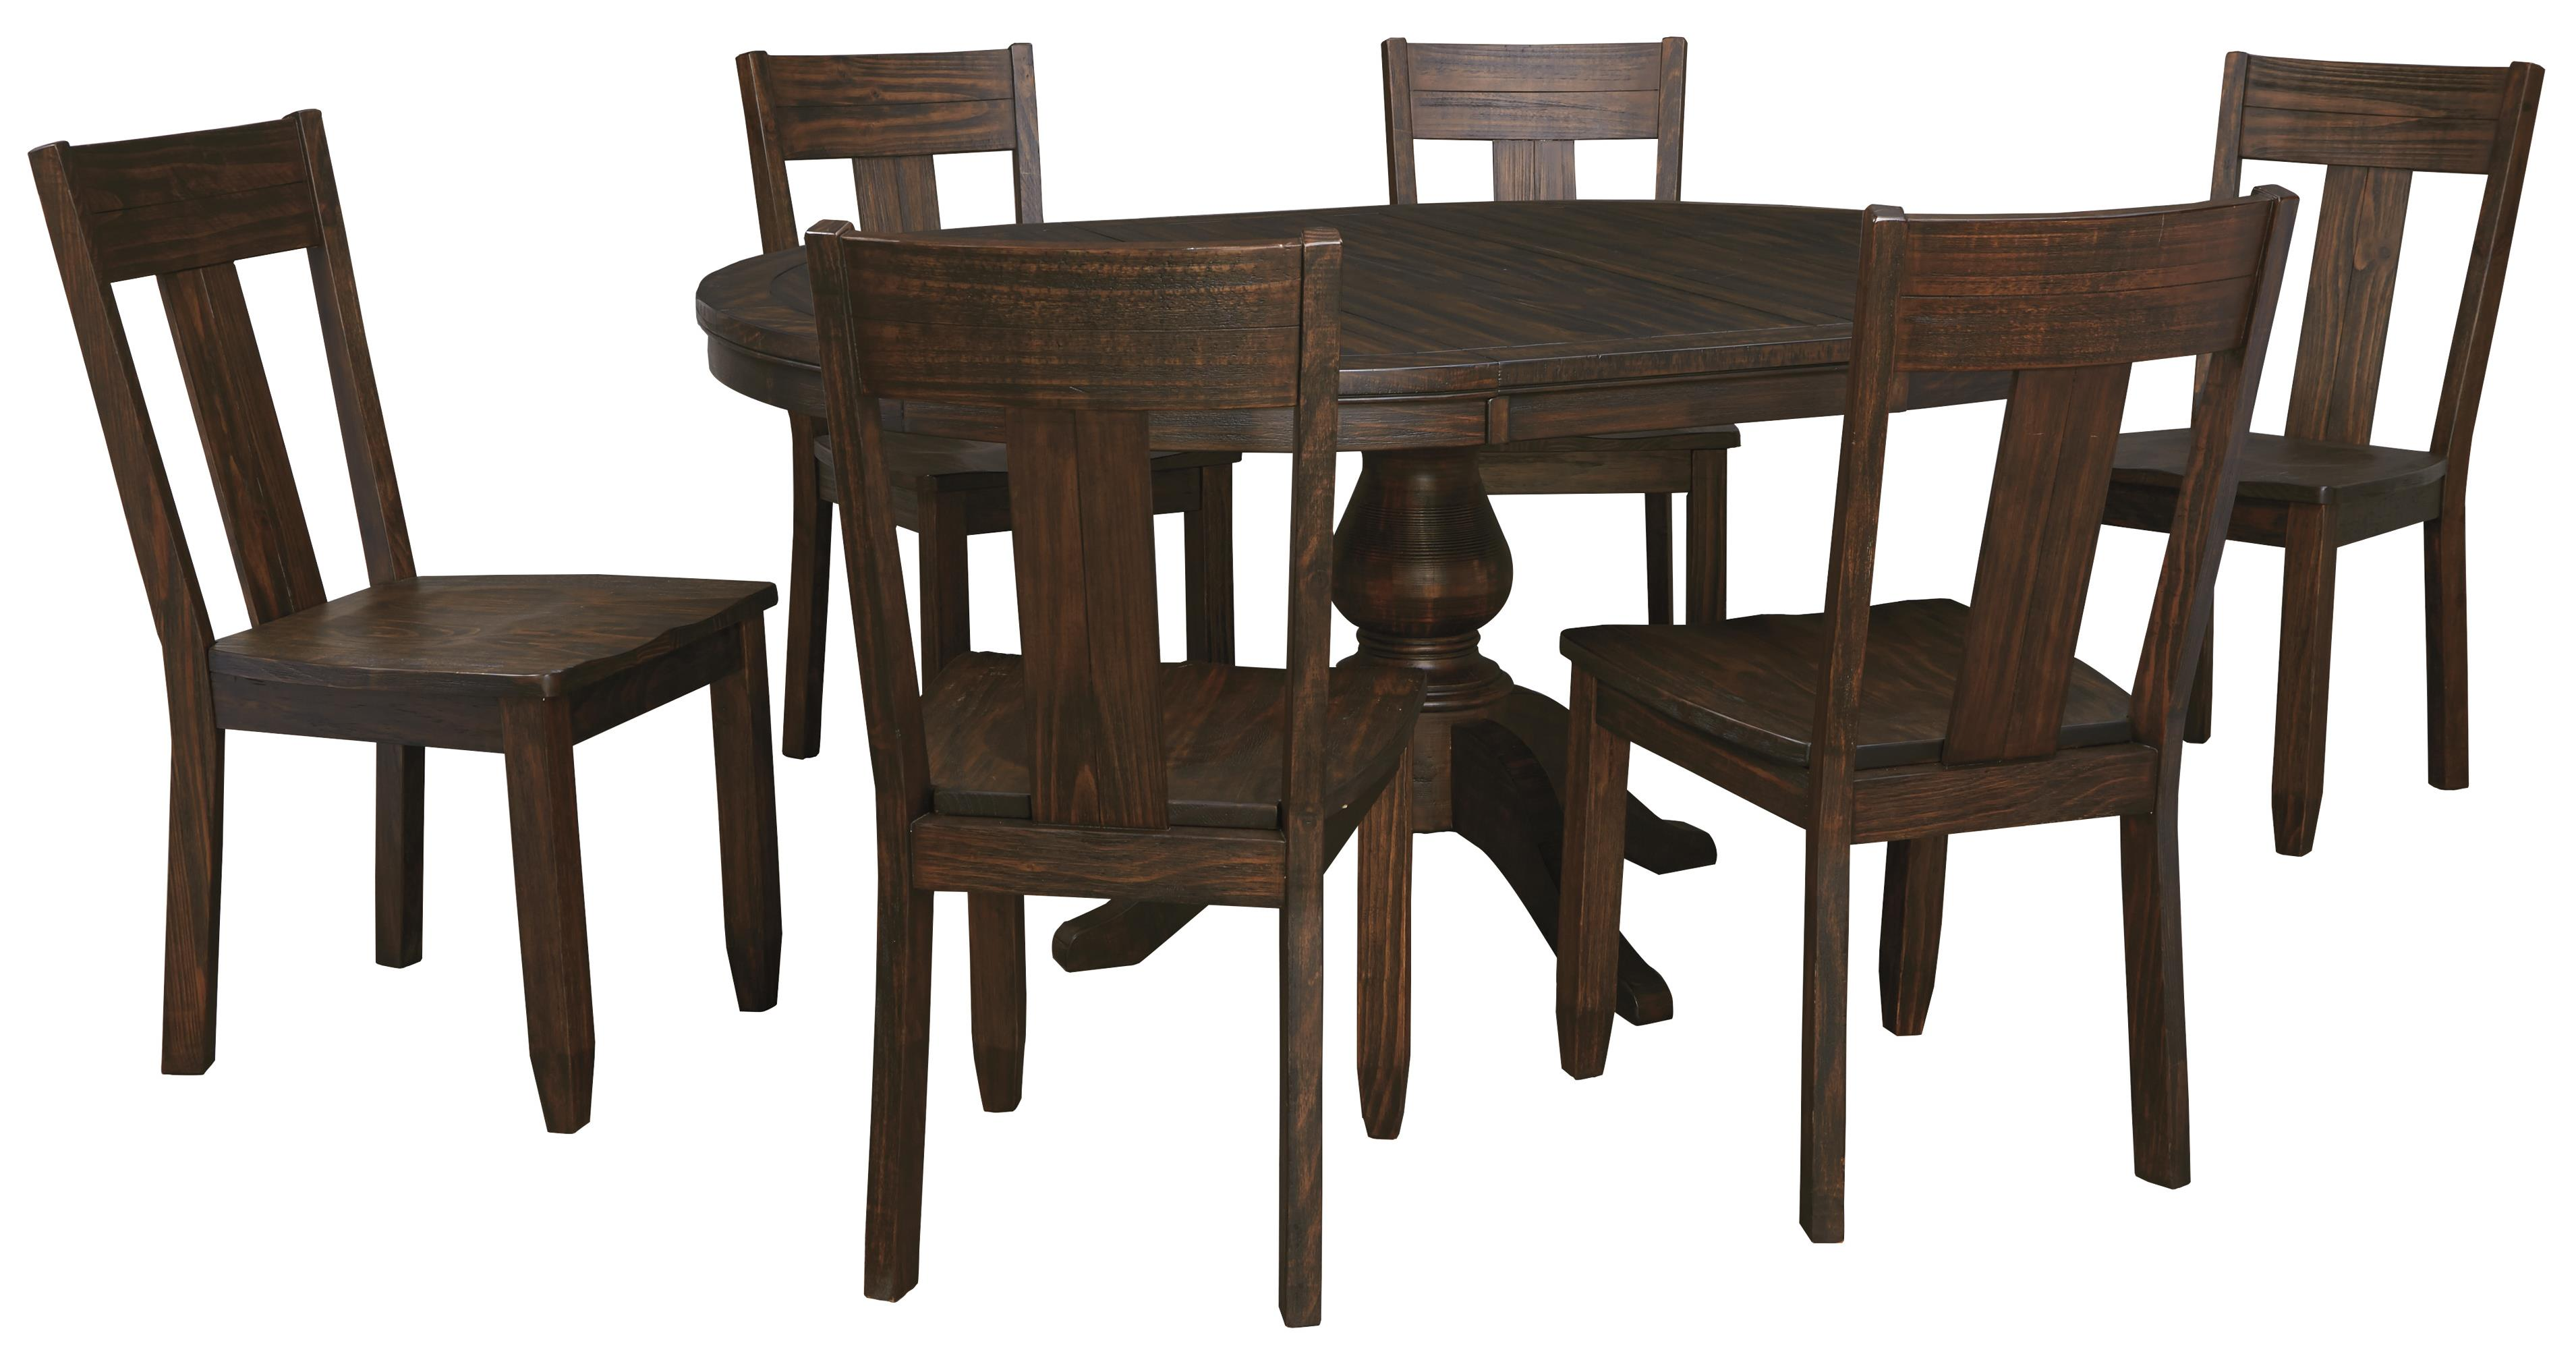 7 Piece Oval Dining Table Set With Wood Seat Side Chairs